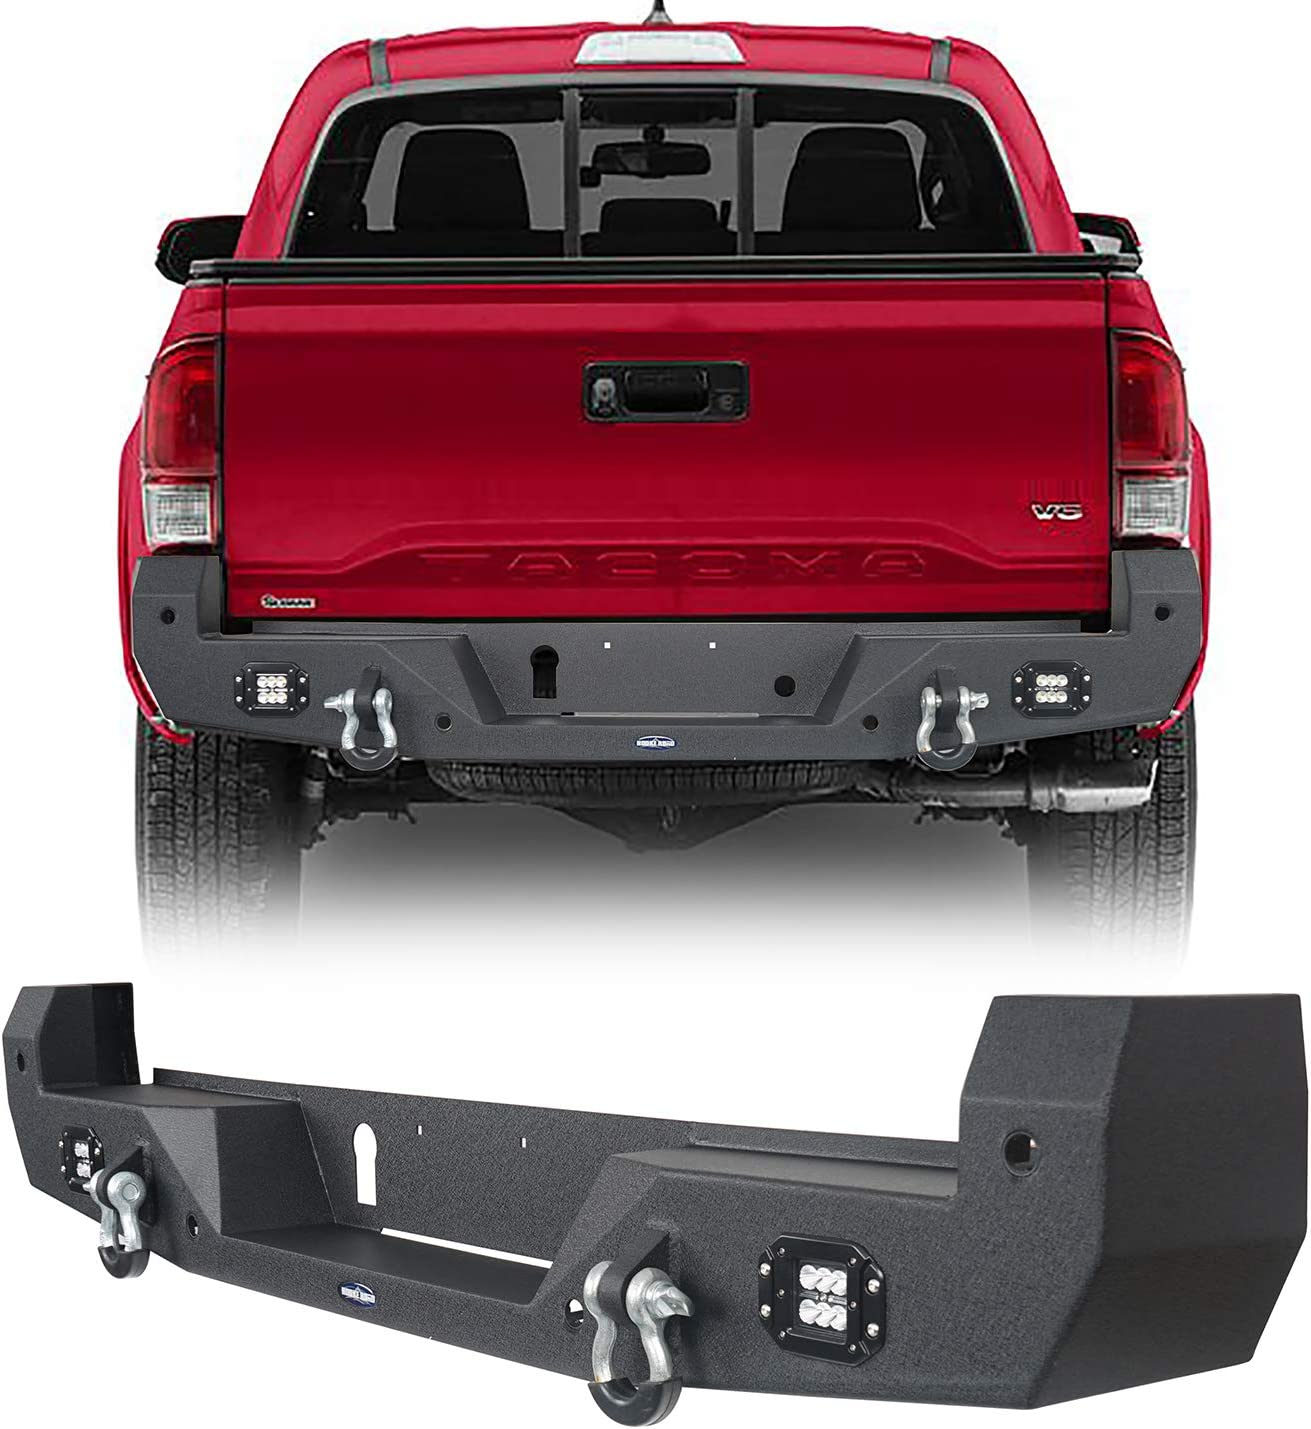 Hooke Road Tacoma Rear Back Steel Bumper w//2 /×18W LED Floodlights /& D-rings Compatible with Toyota Tacoma 2016 2017 2018 2019 2020 2021 Pickup Truck